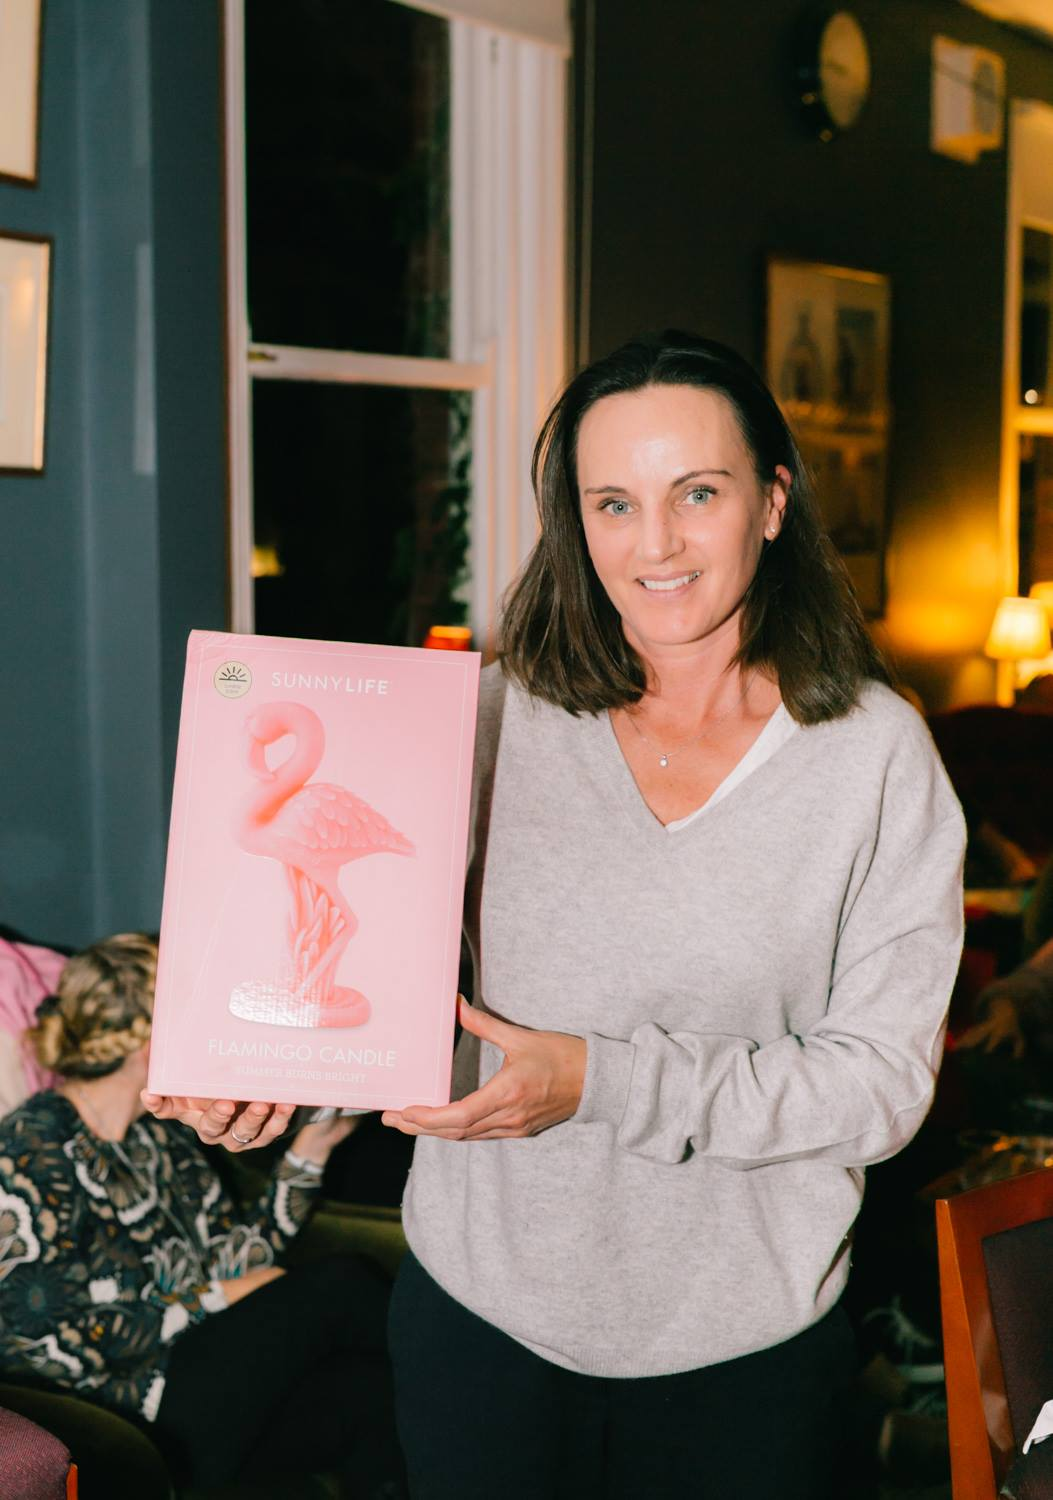 Congratulations to our winner of the fabulous pink flamingo candle, one of the prizes for our 'In the Pink' raffle, courtesy of the genrous folks at abode. We raised $200 to support Breast Cancer Network Australia